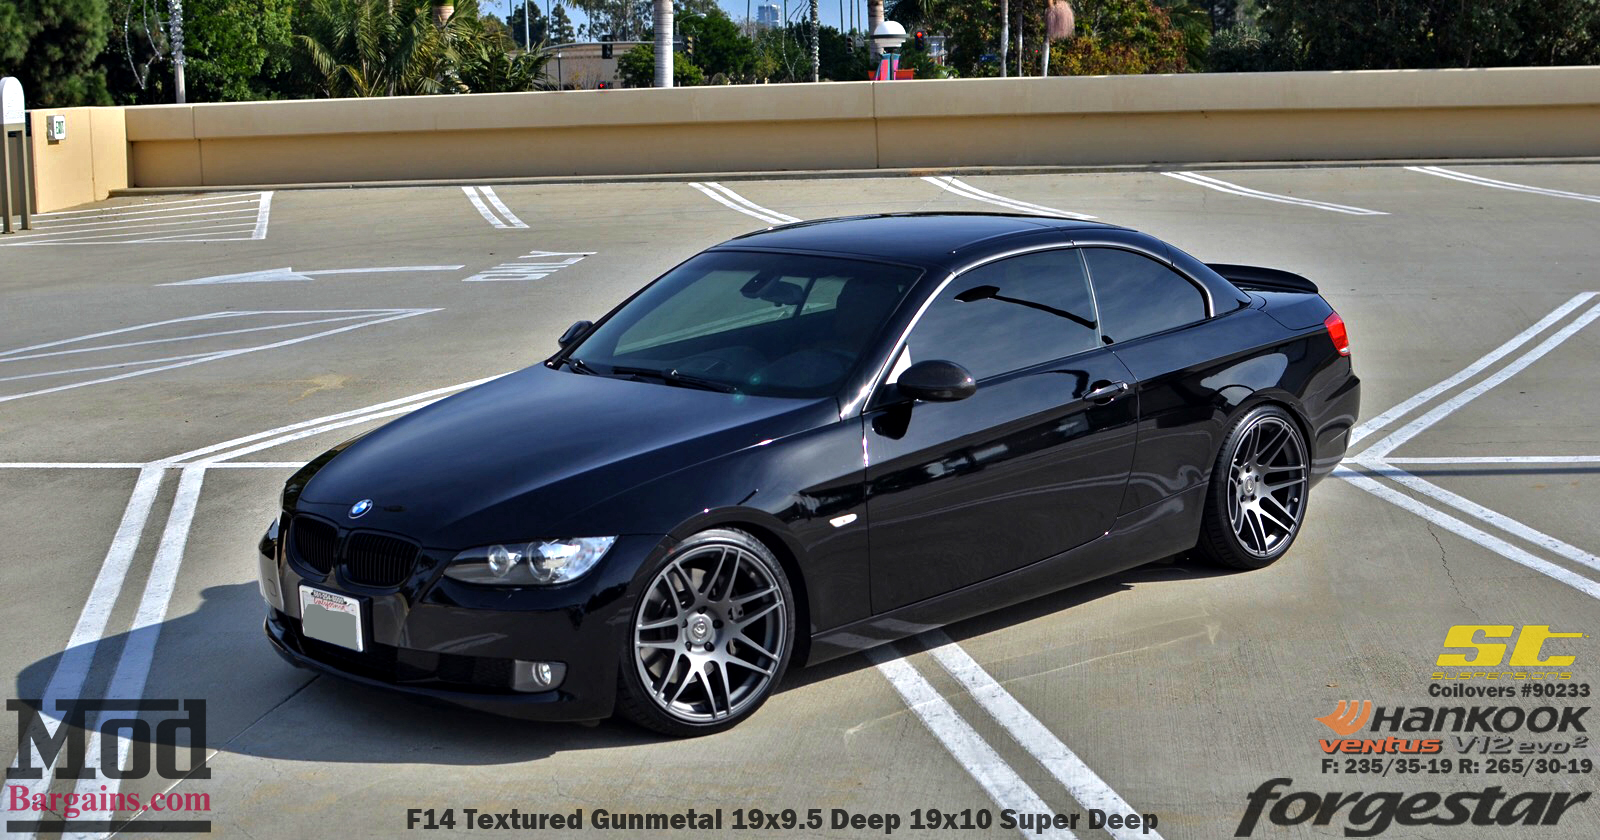 All BMW Models 2007 bmw 335i maintenance schedule ST Suspensions Coilovers For 2007-13 BMW 328i/330i/335i/xi [E90 ...